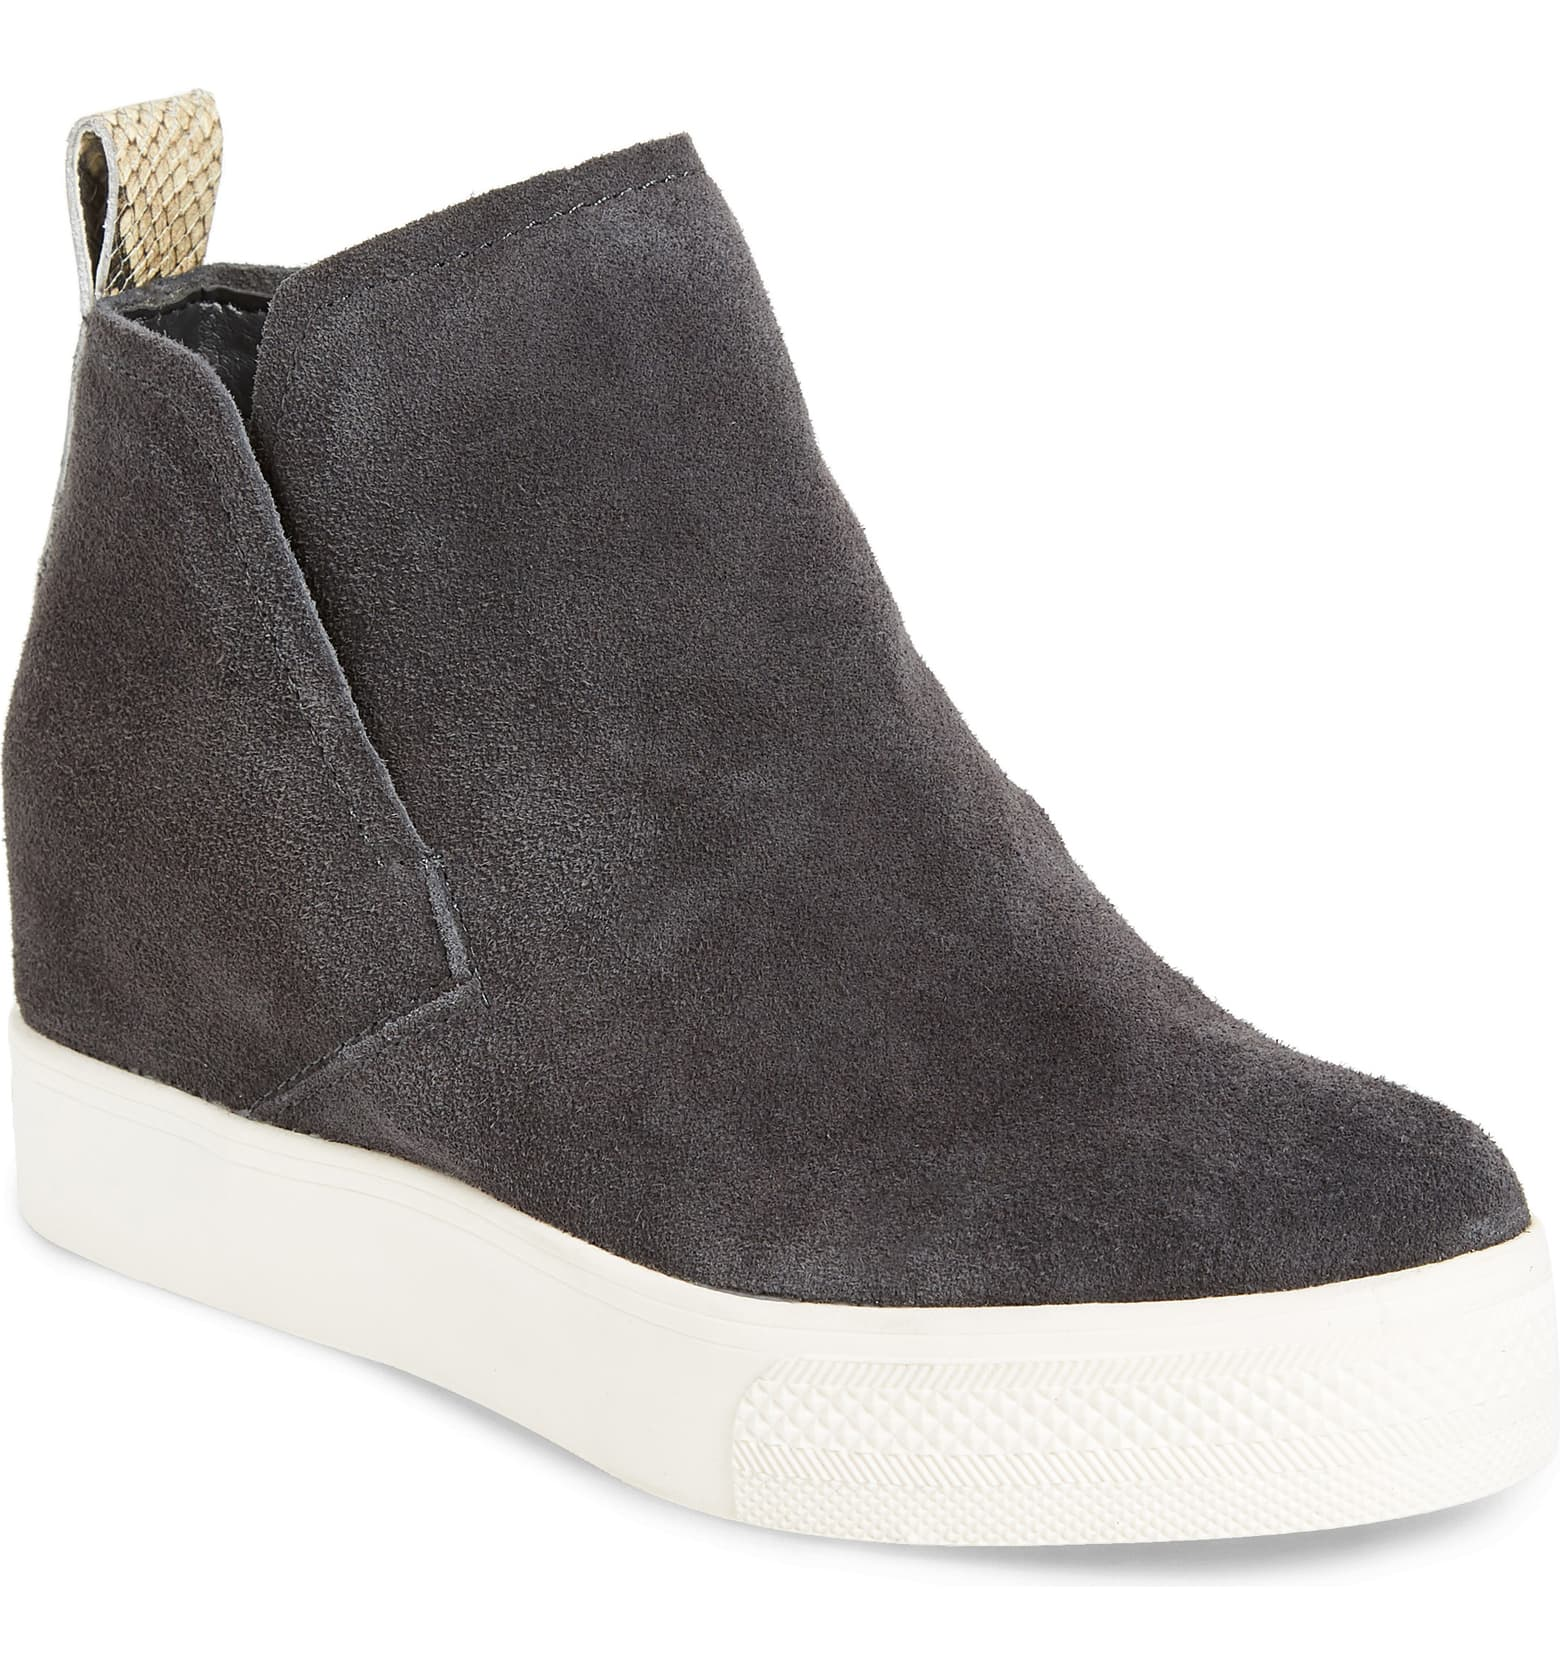 Here are my favorite sneaker boots for fall 2019 trending styles. Check out how cute these are!